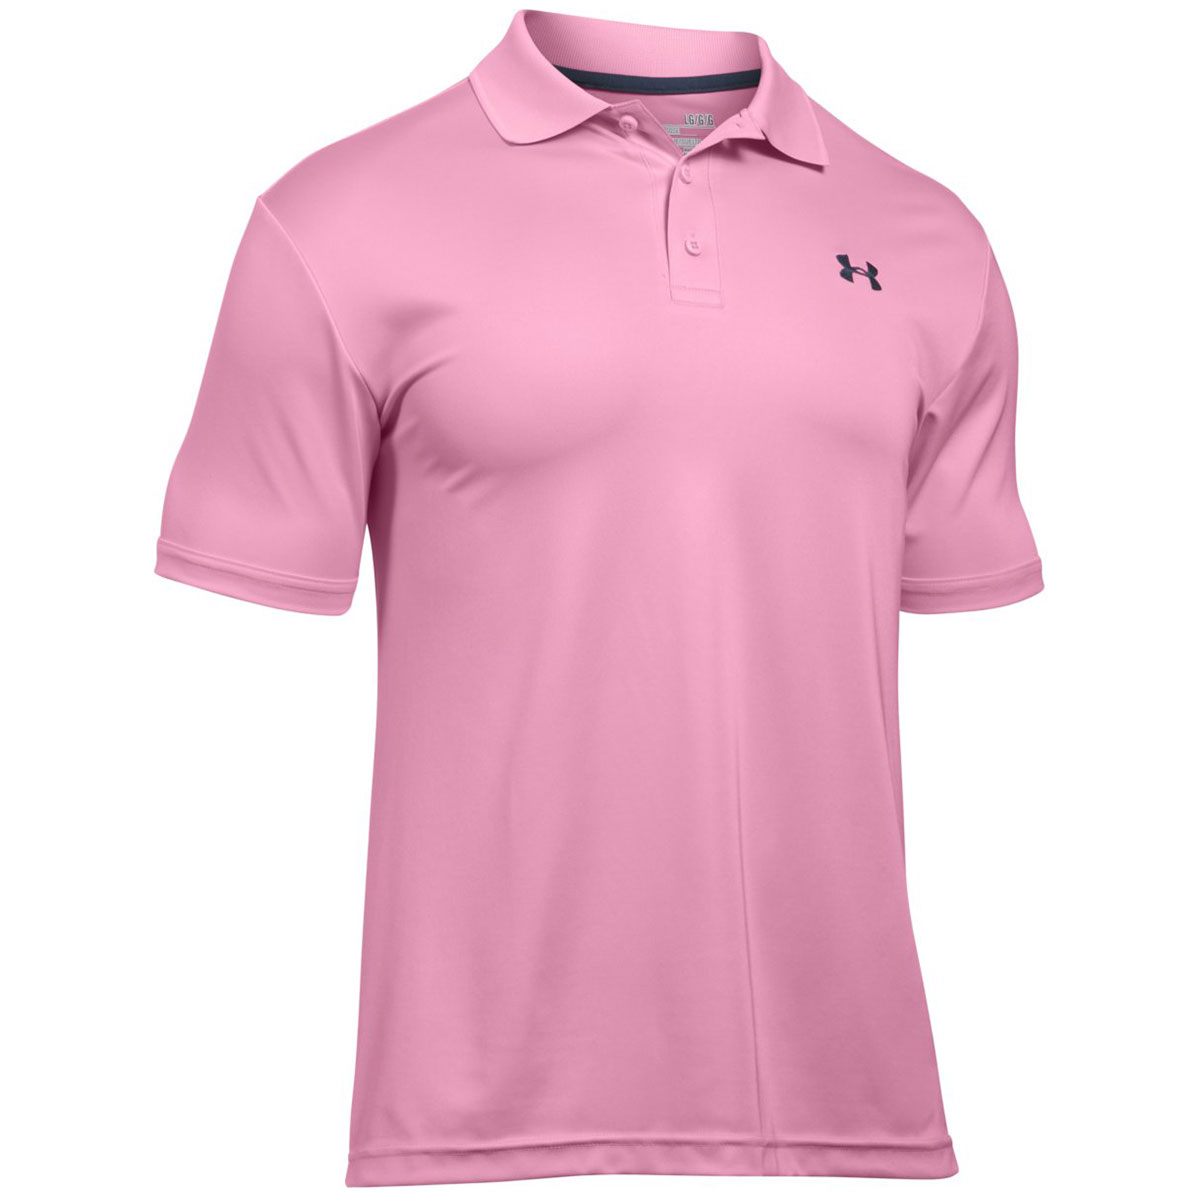 Under armour mens 2018 ua performance tech short sleeve for Mens xs golf shirts